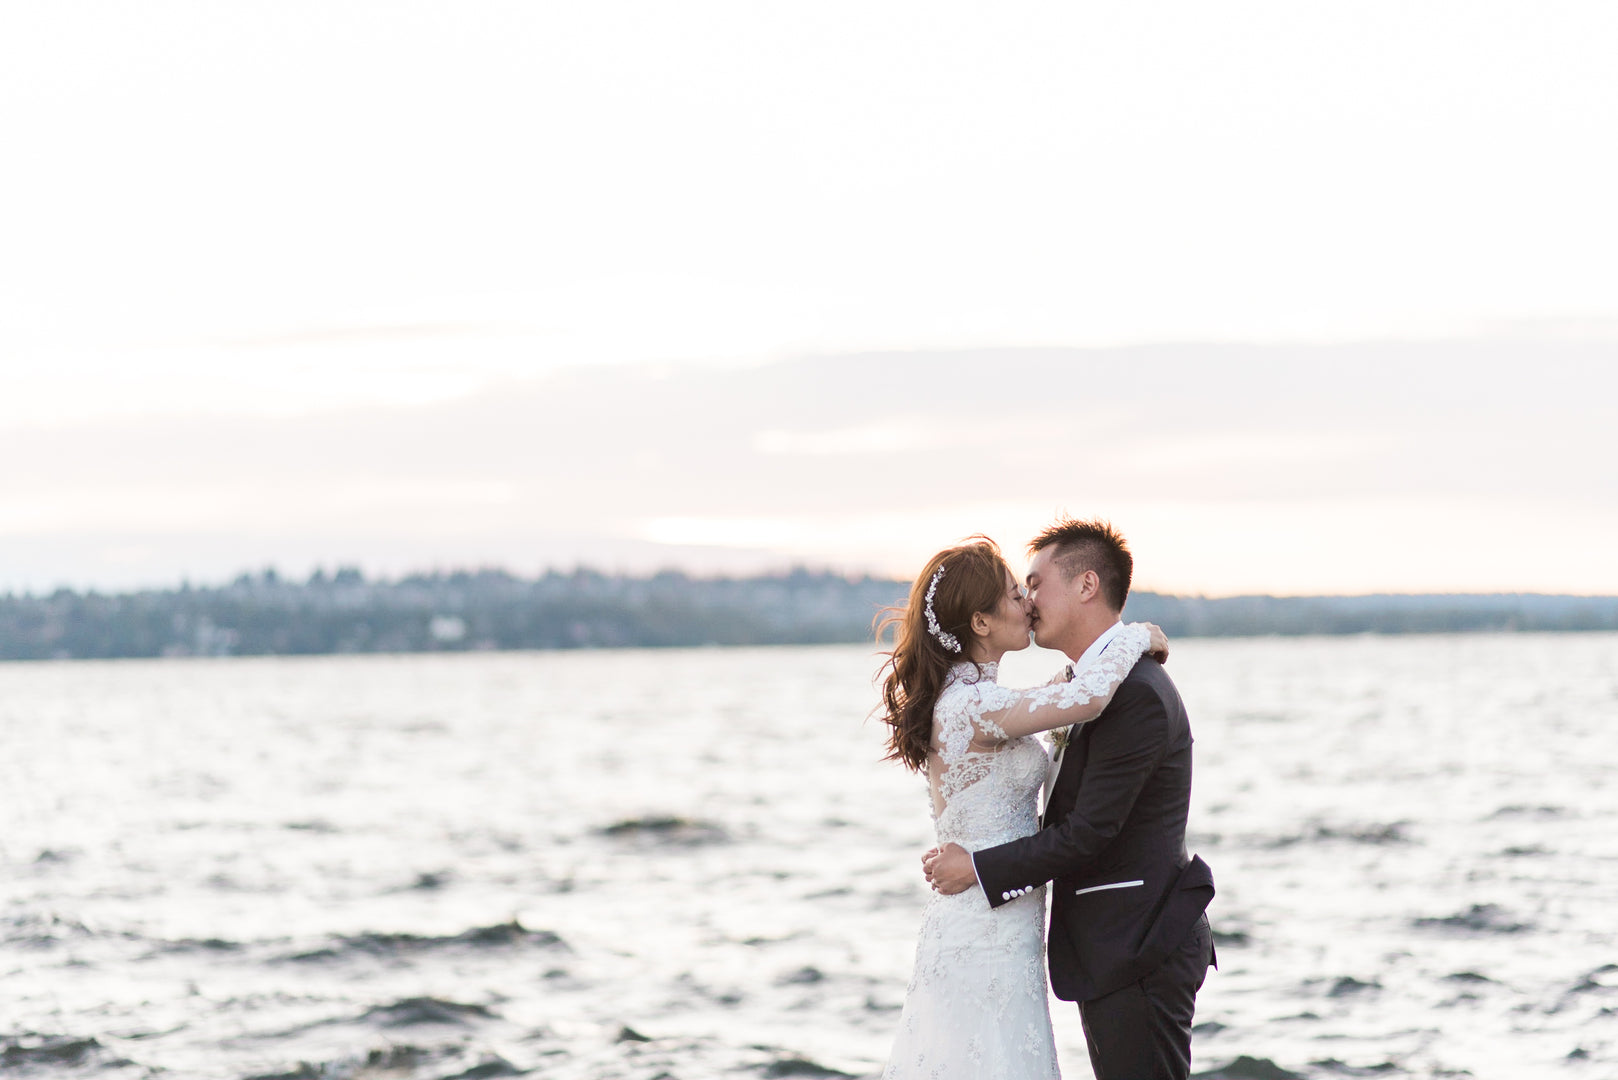 Bride and Groom At Sunset | A Grand Wedding On The Water | Kate Aspen